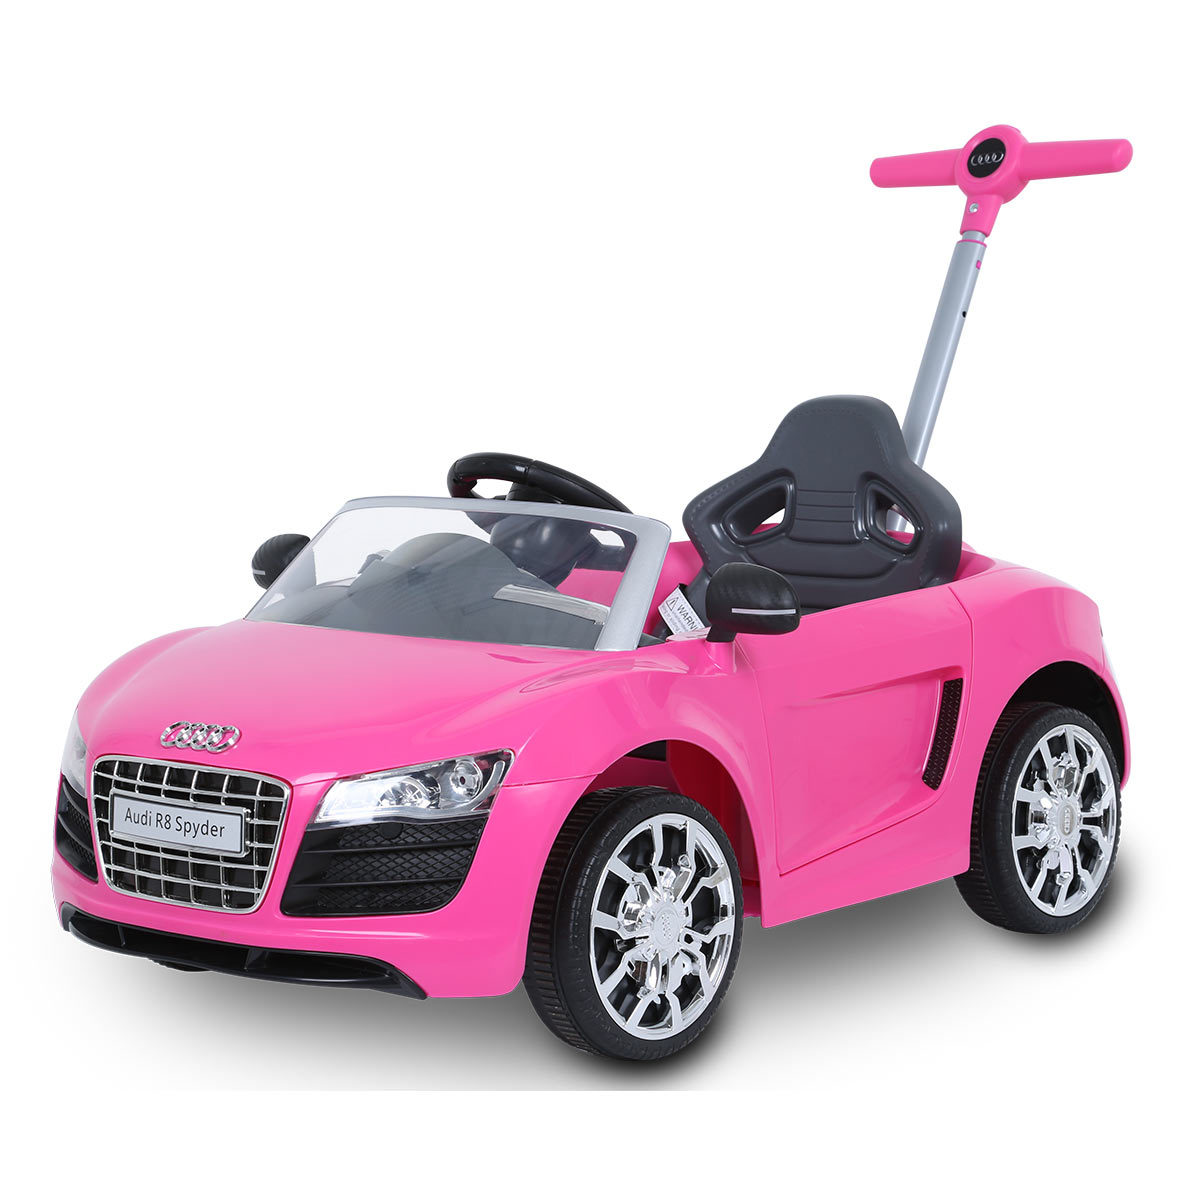 Rollplay Audi R8 Spyder Children S Push Car Ride On Pink 12 Months Costco Uk